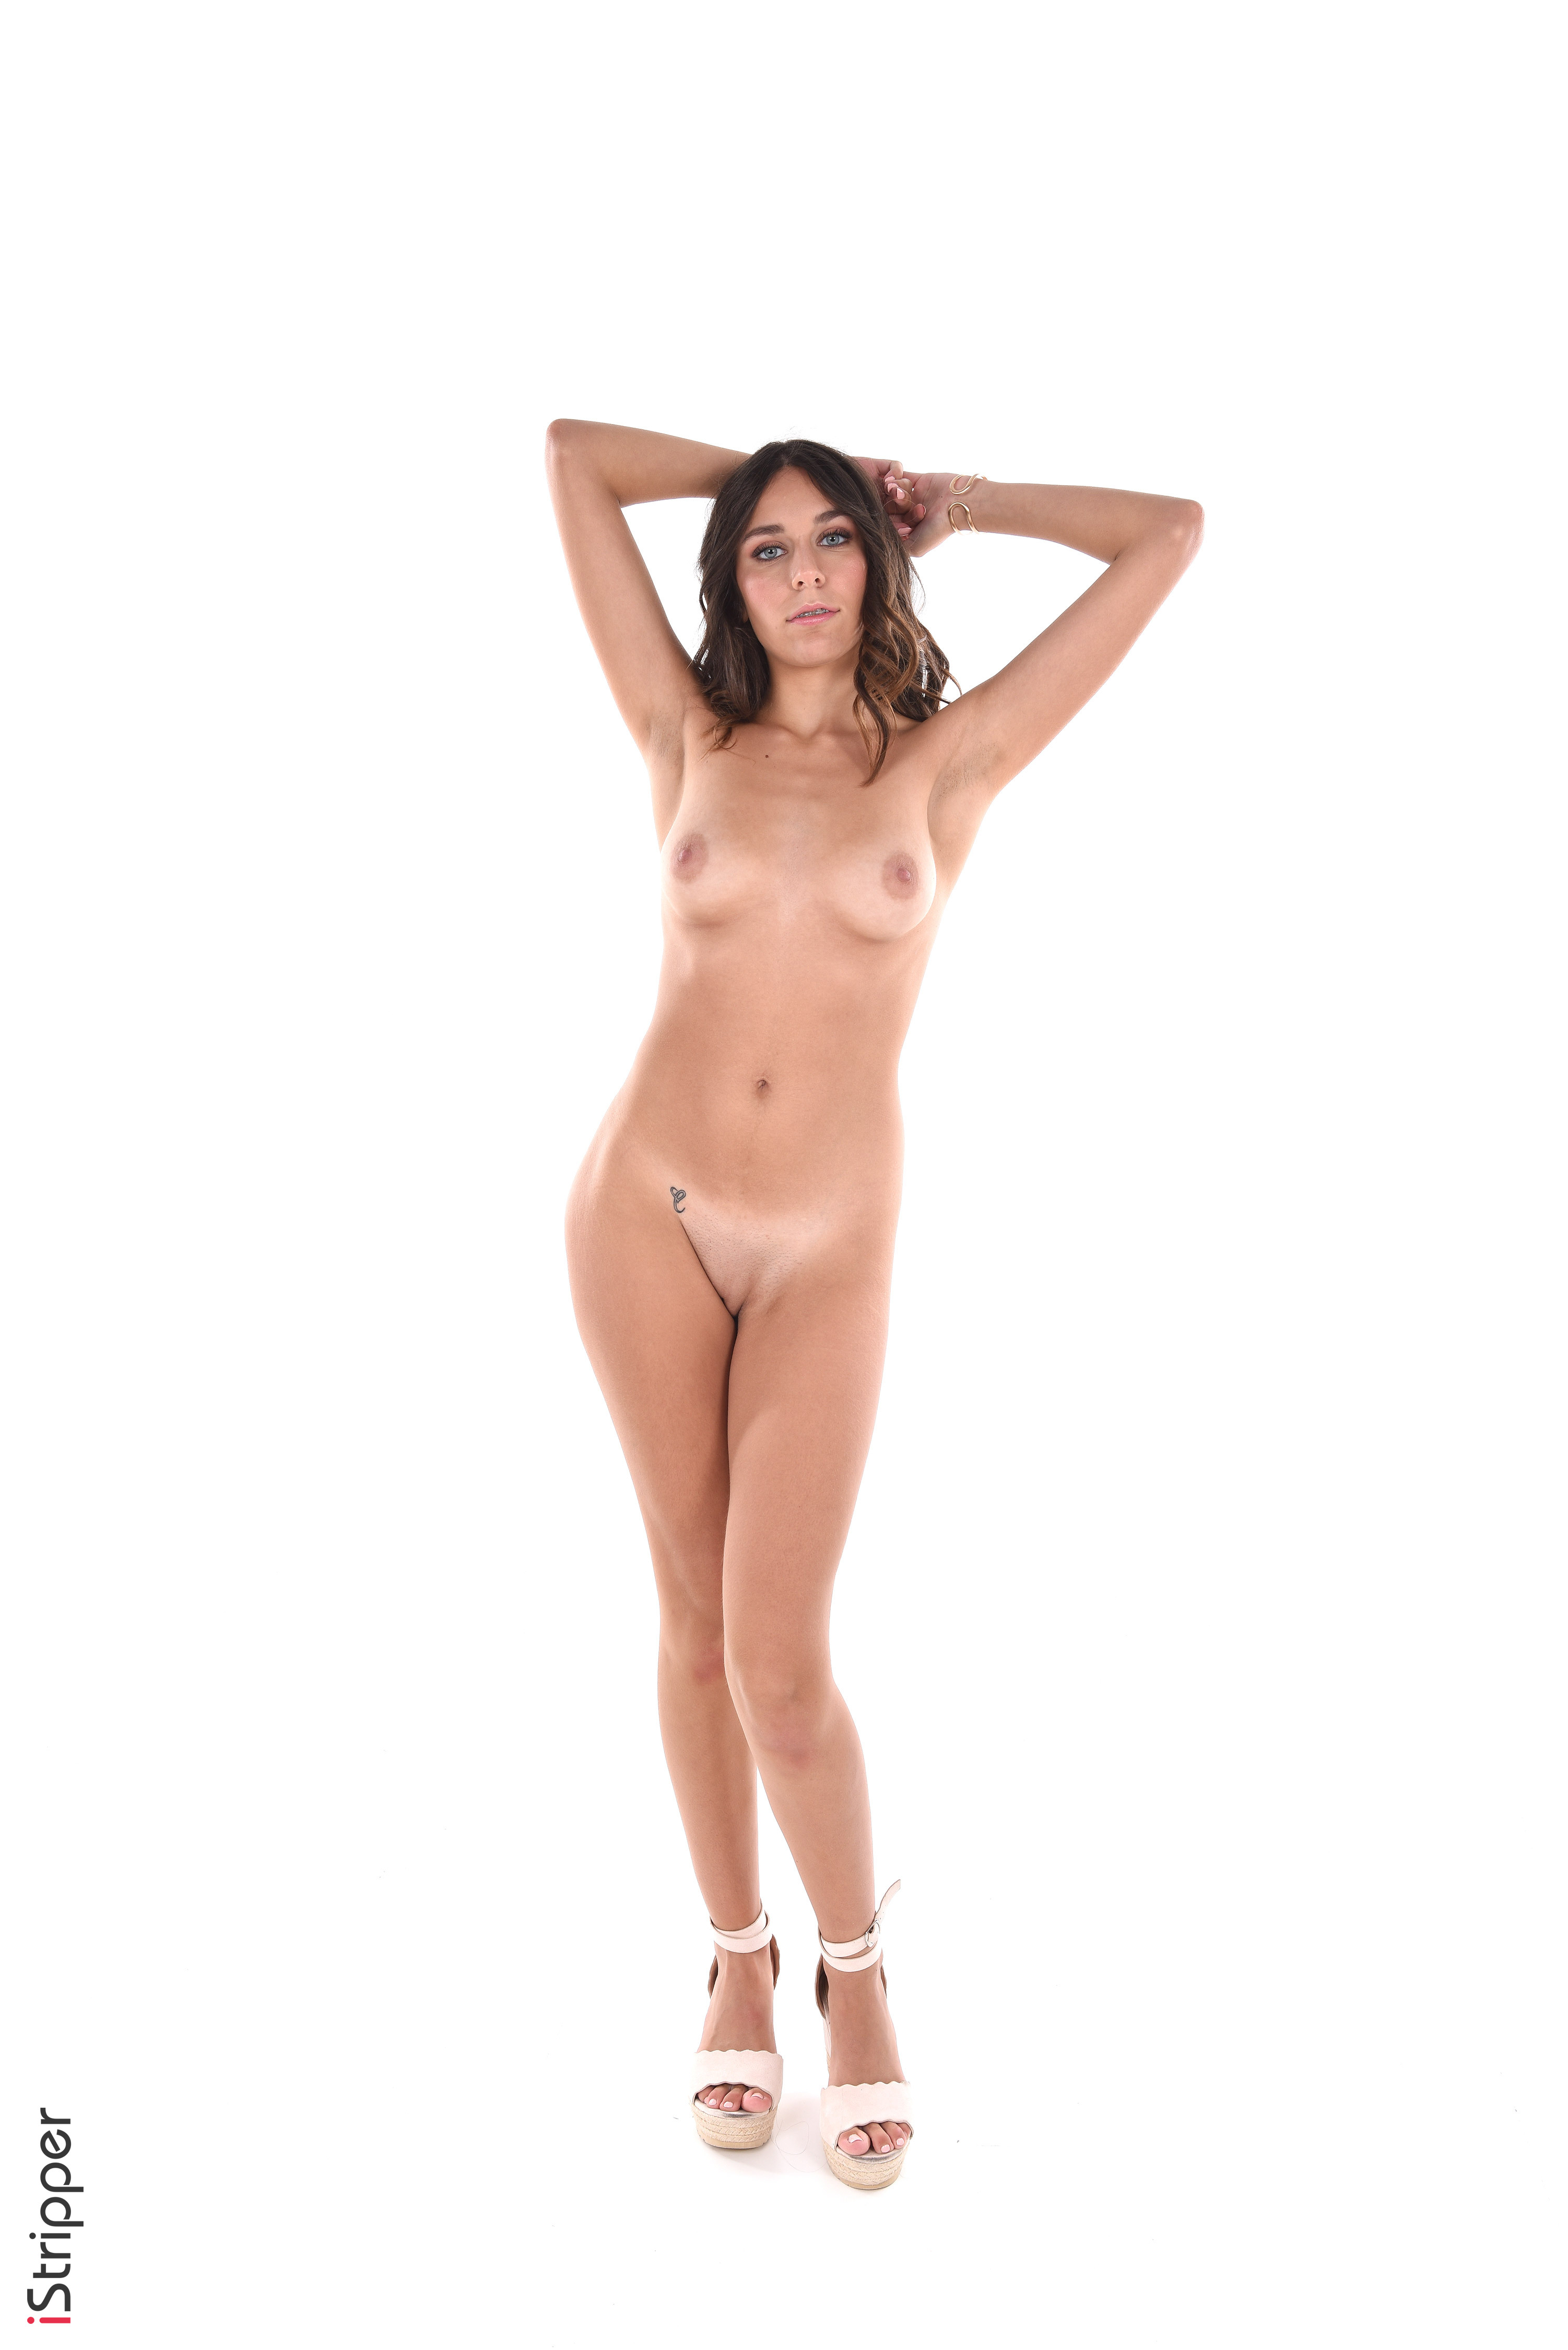 free wallpaper of naked women